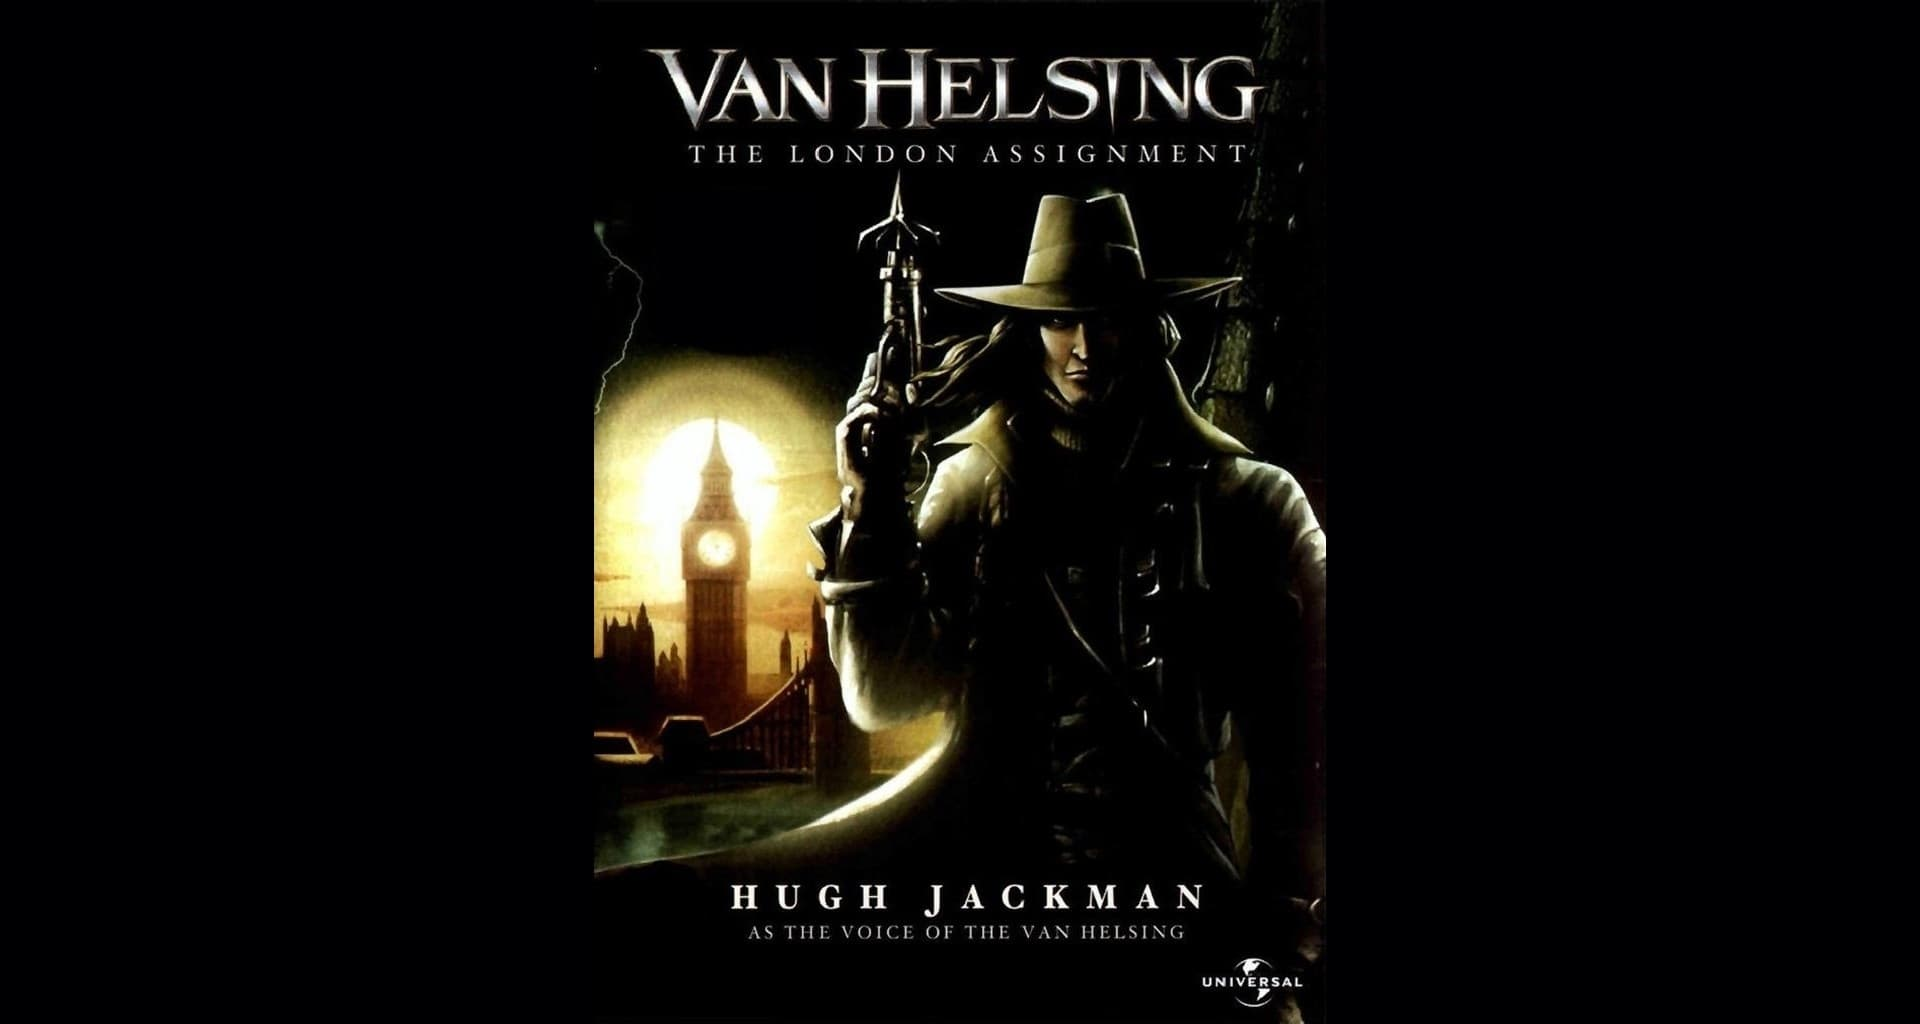 van helsing this the united kingdom job hugh jackman